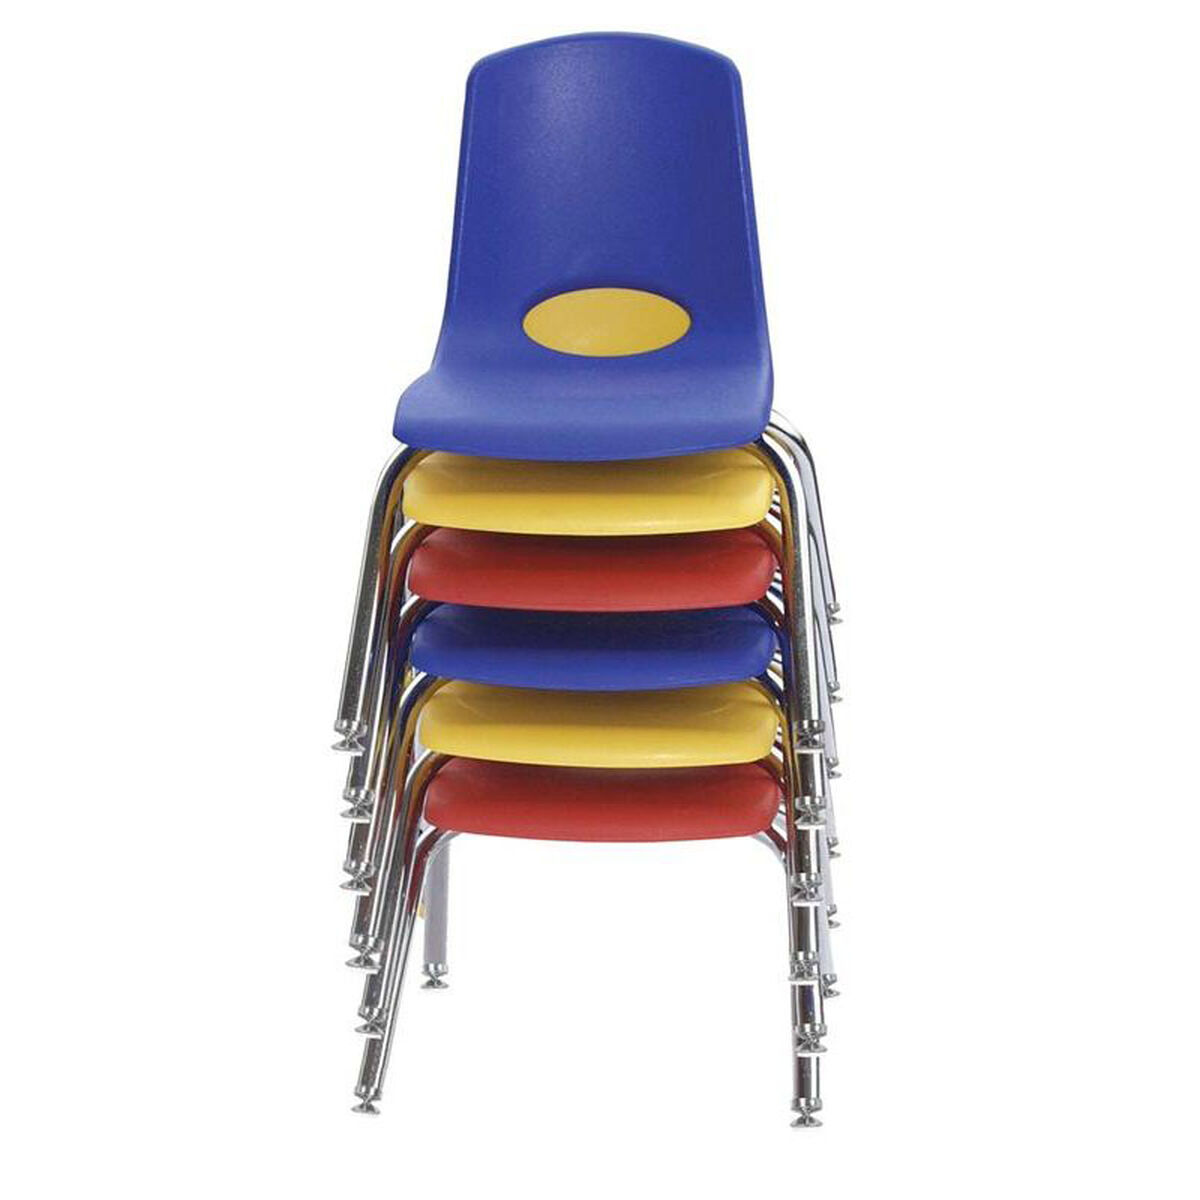 exsanew-49rs8091.ga Coupon Codes. exsanew-49rs8091.ga offers a large variety of quality discount chairs and furniture for your office, home, business, restaurant, school, church or events at unbeatable prices!